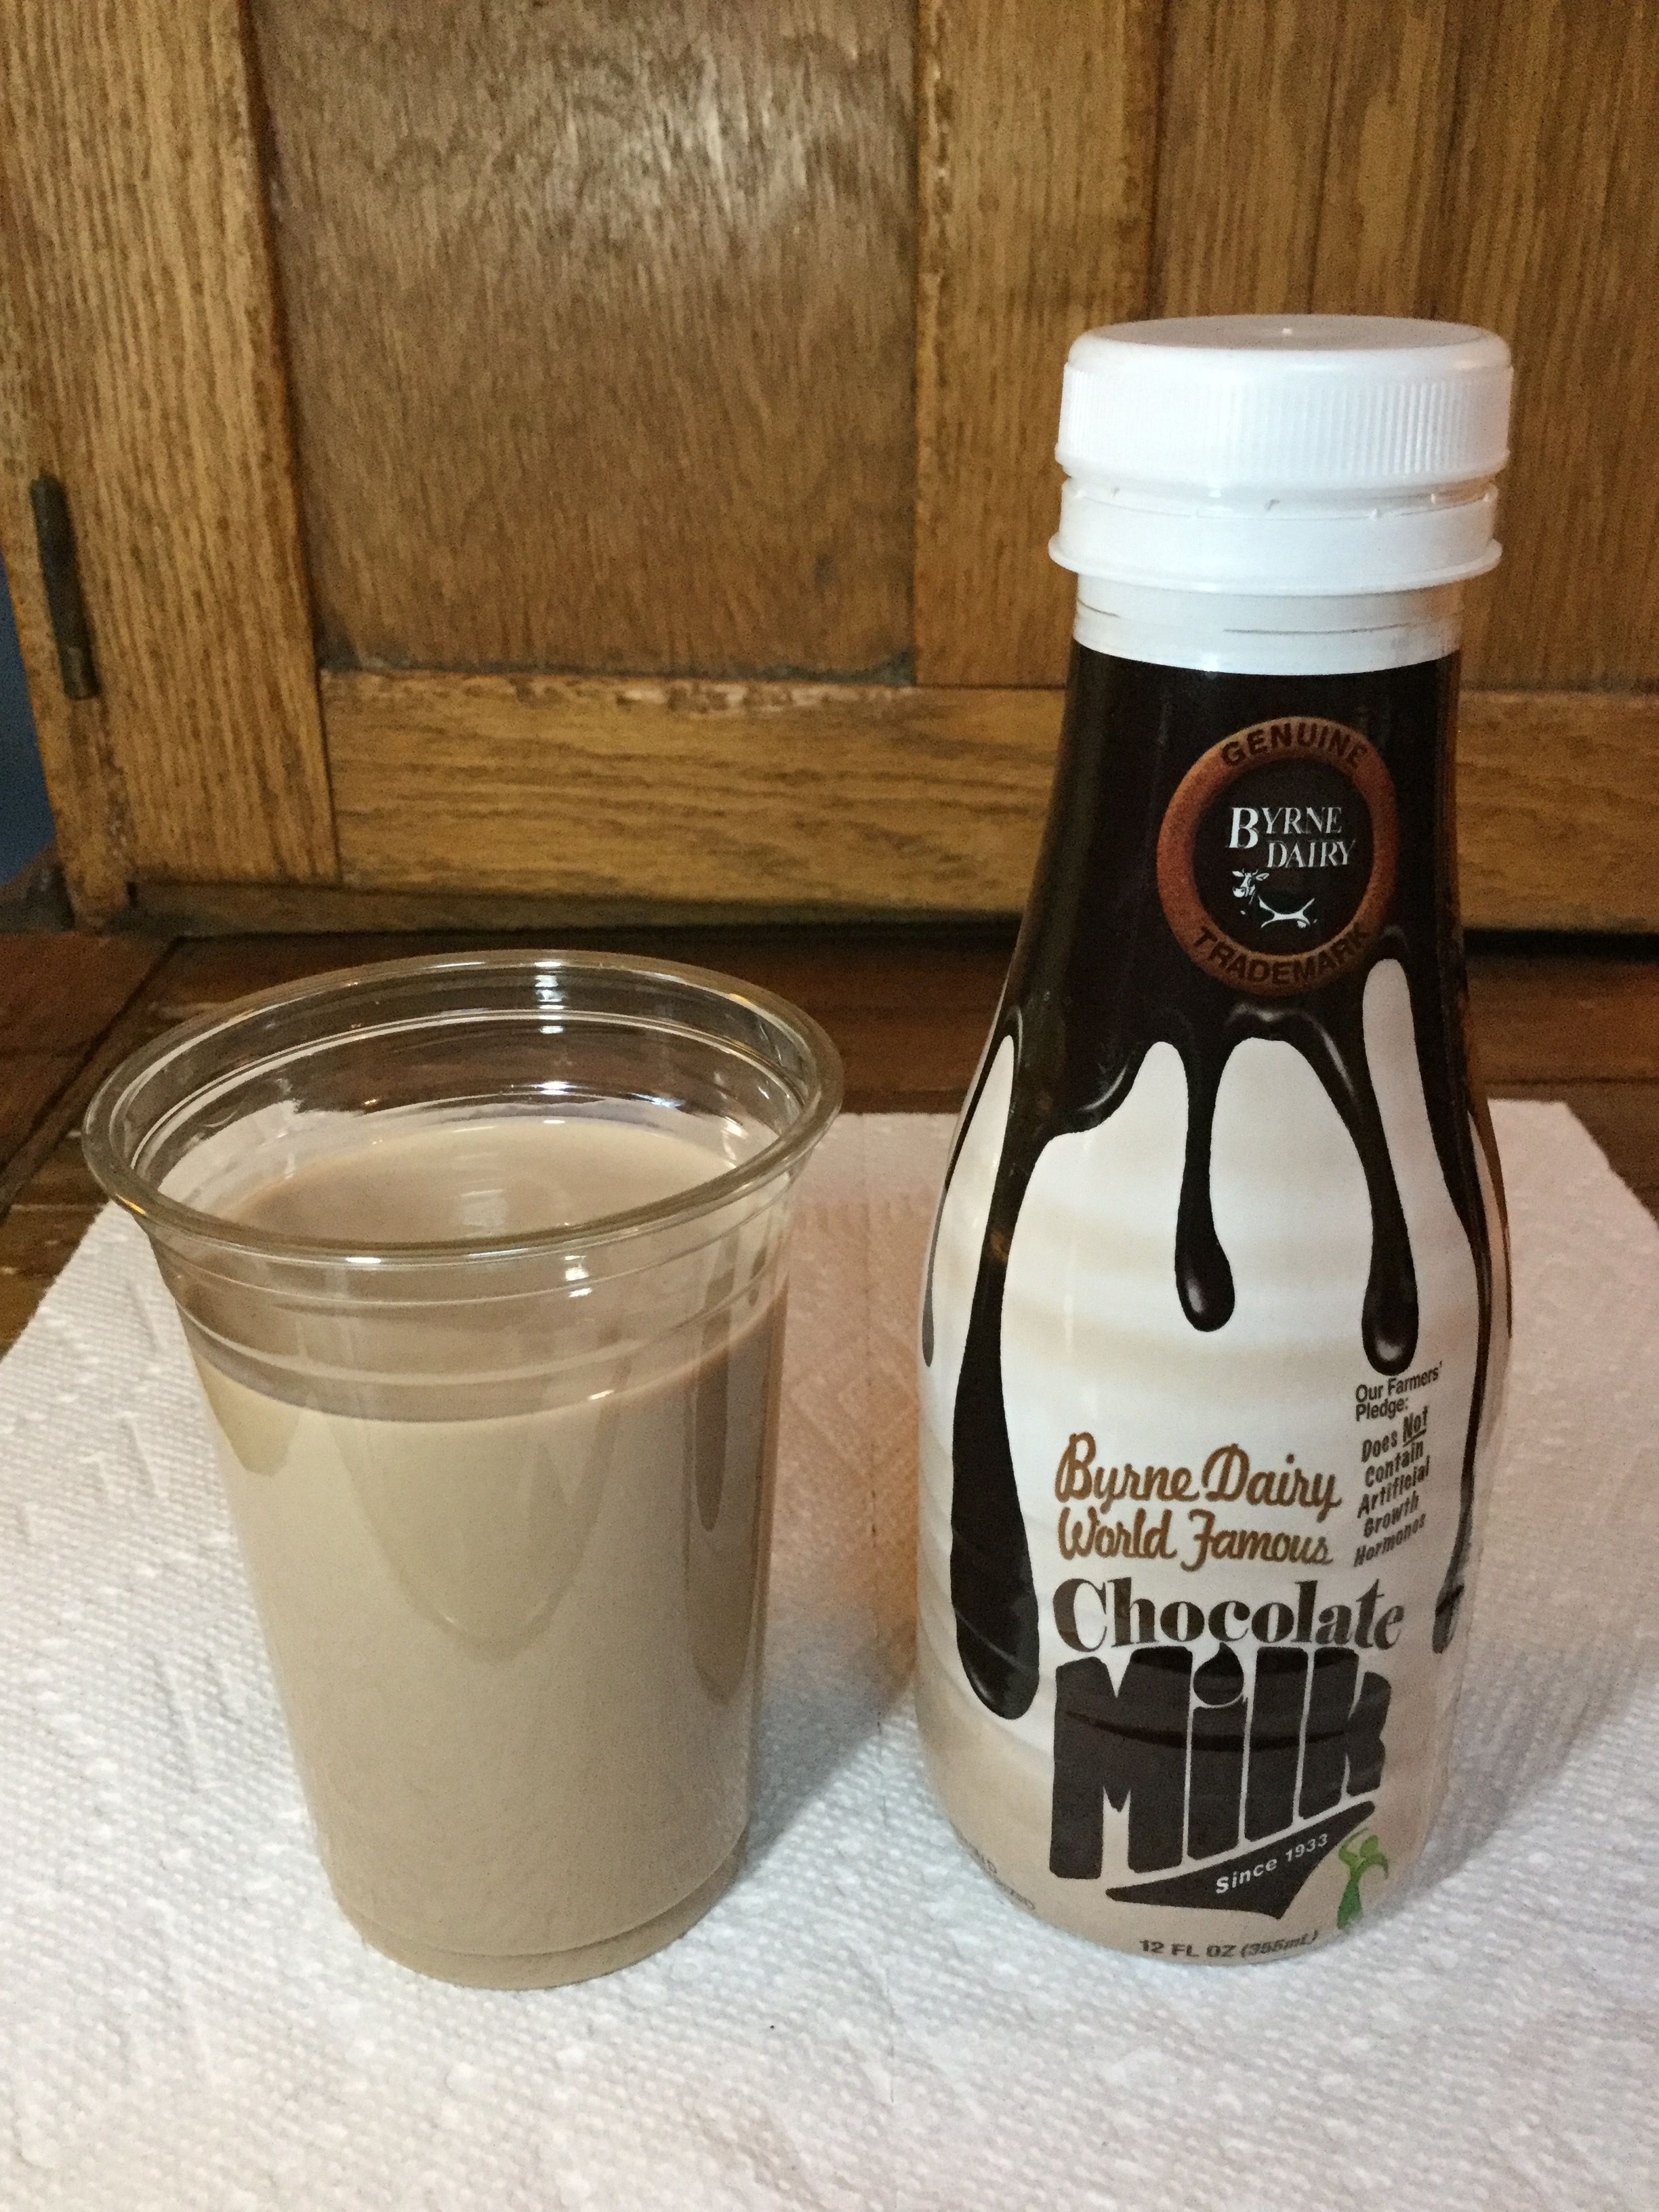 Byrne Dairy World Famous Chocolate Milk Cup